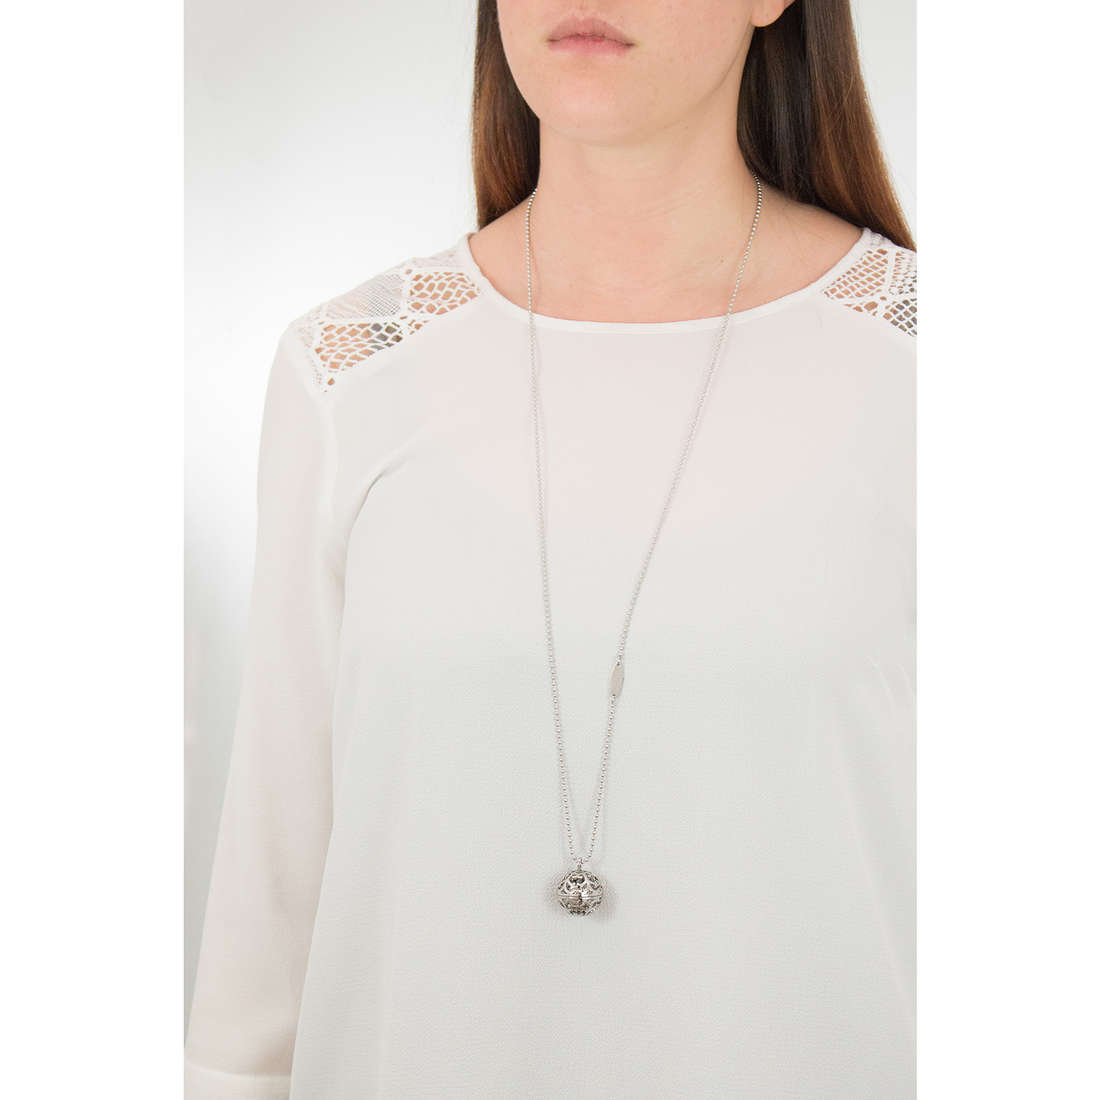 Luca Barra necklaces woman LBCK1053 photo wearing